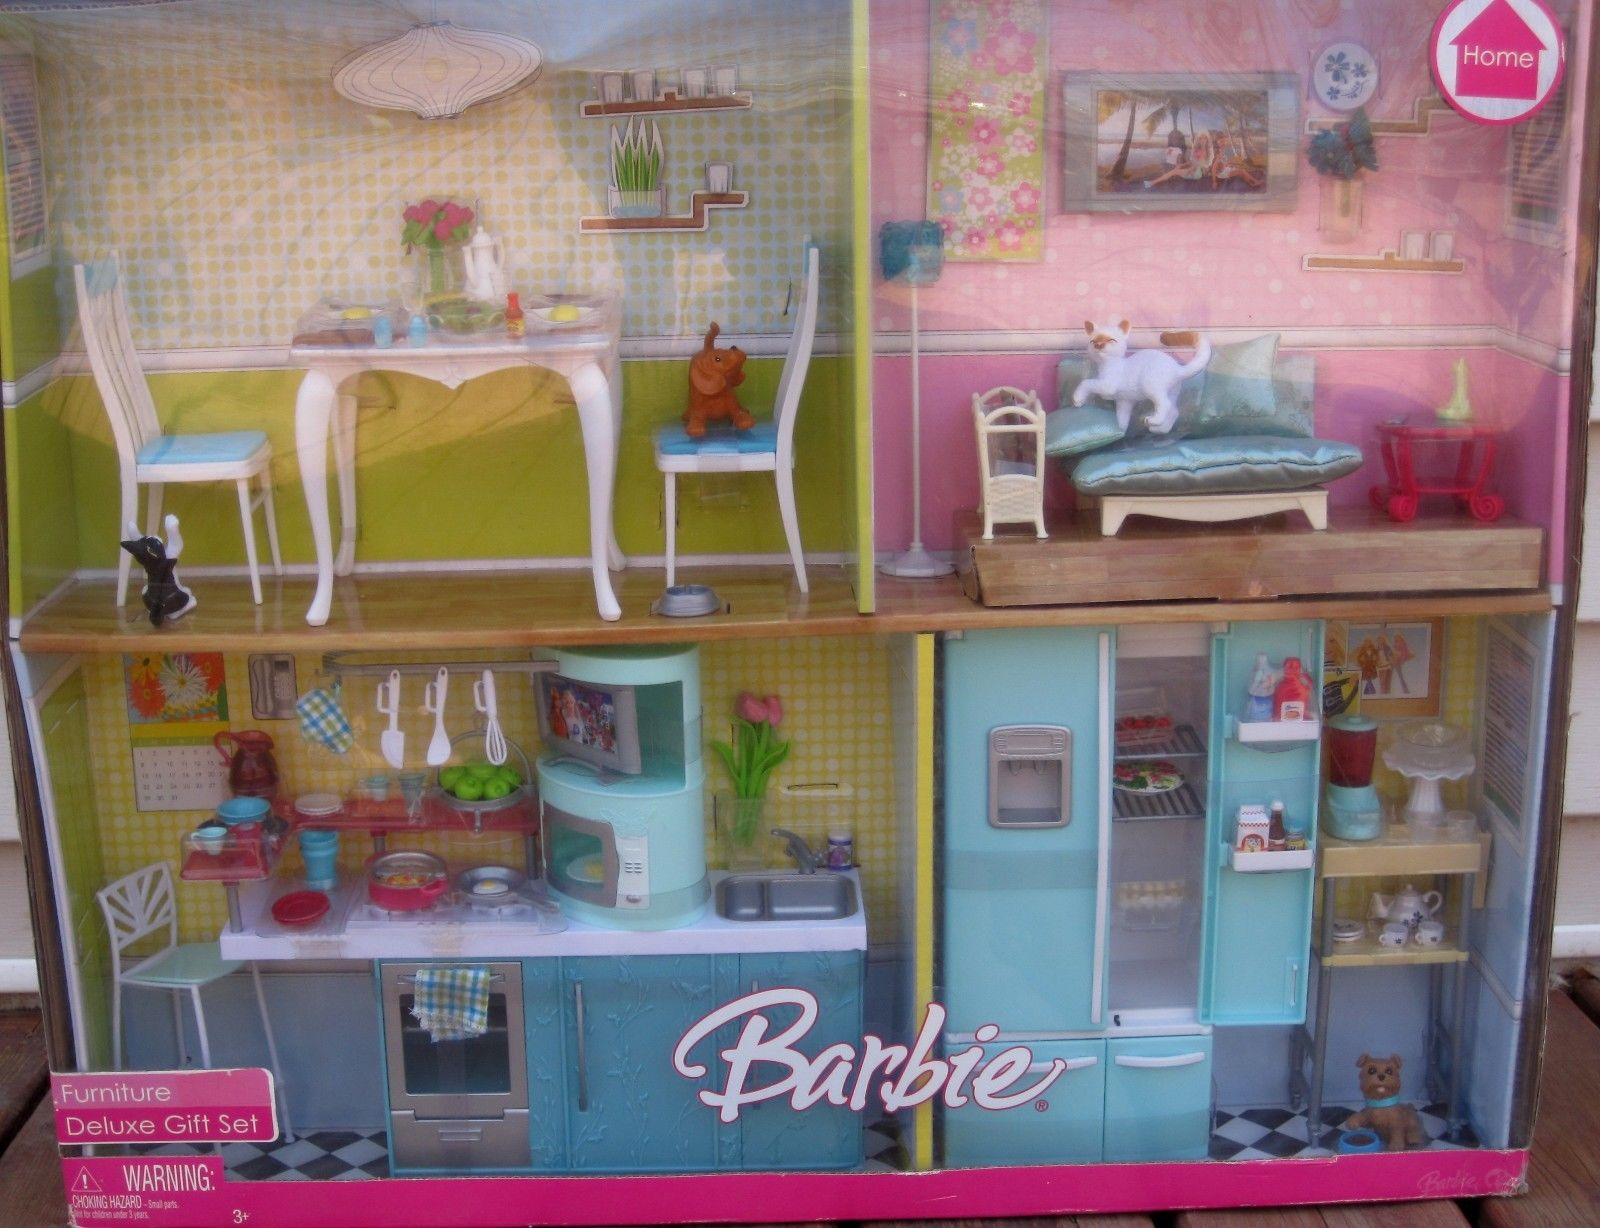 2007 barbie furniture deluxe gift set barbie doll